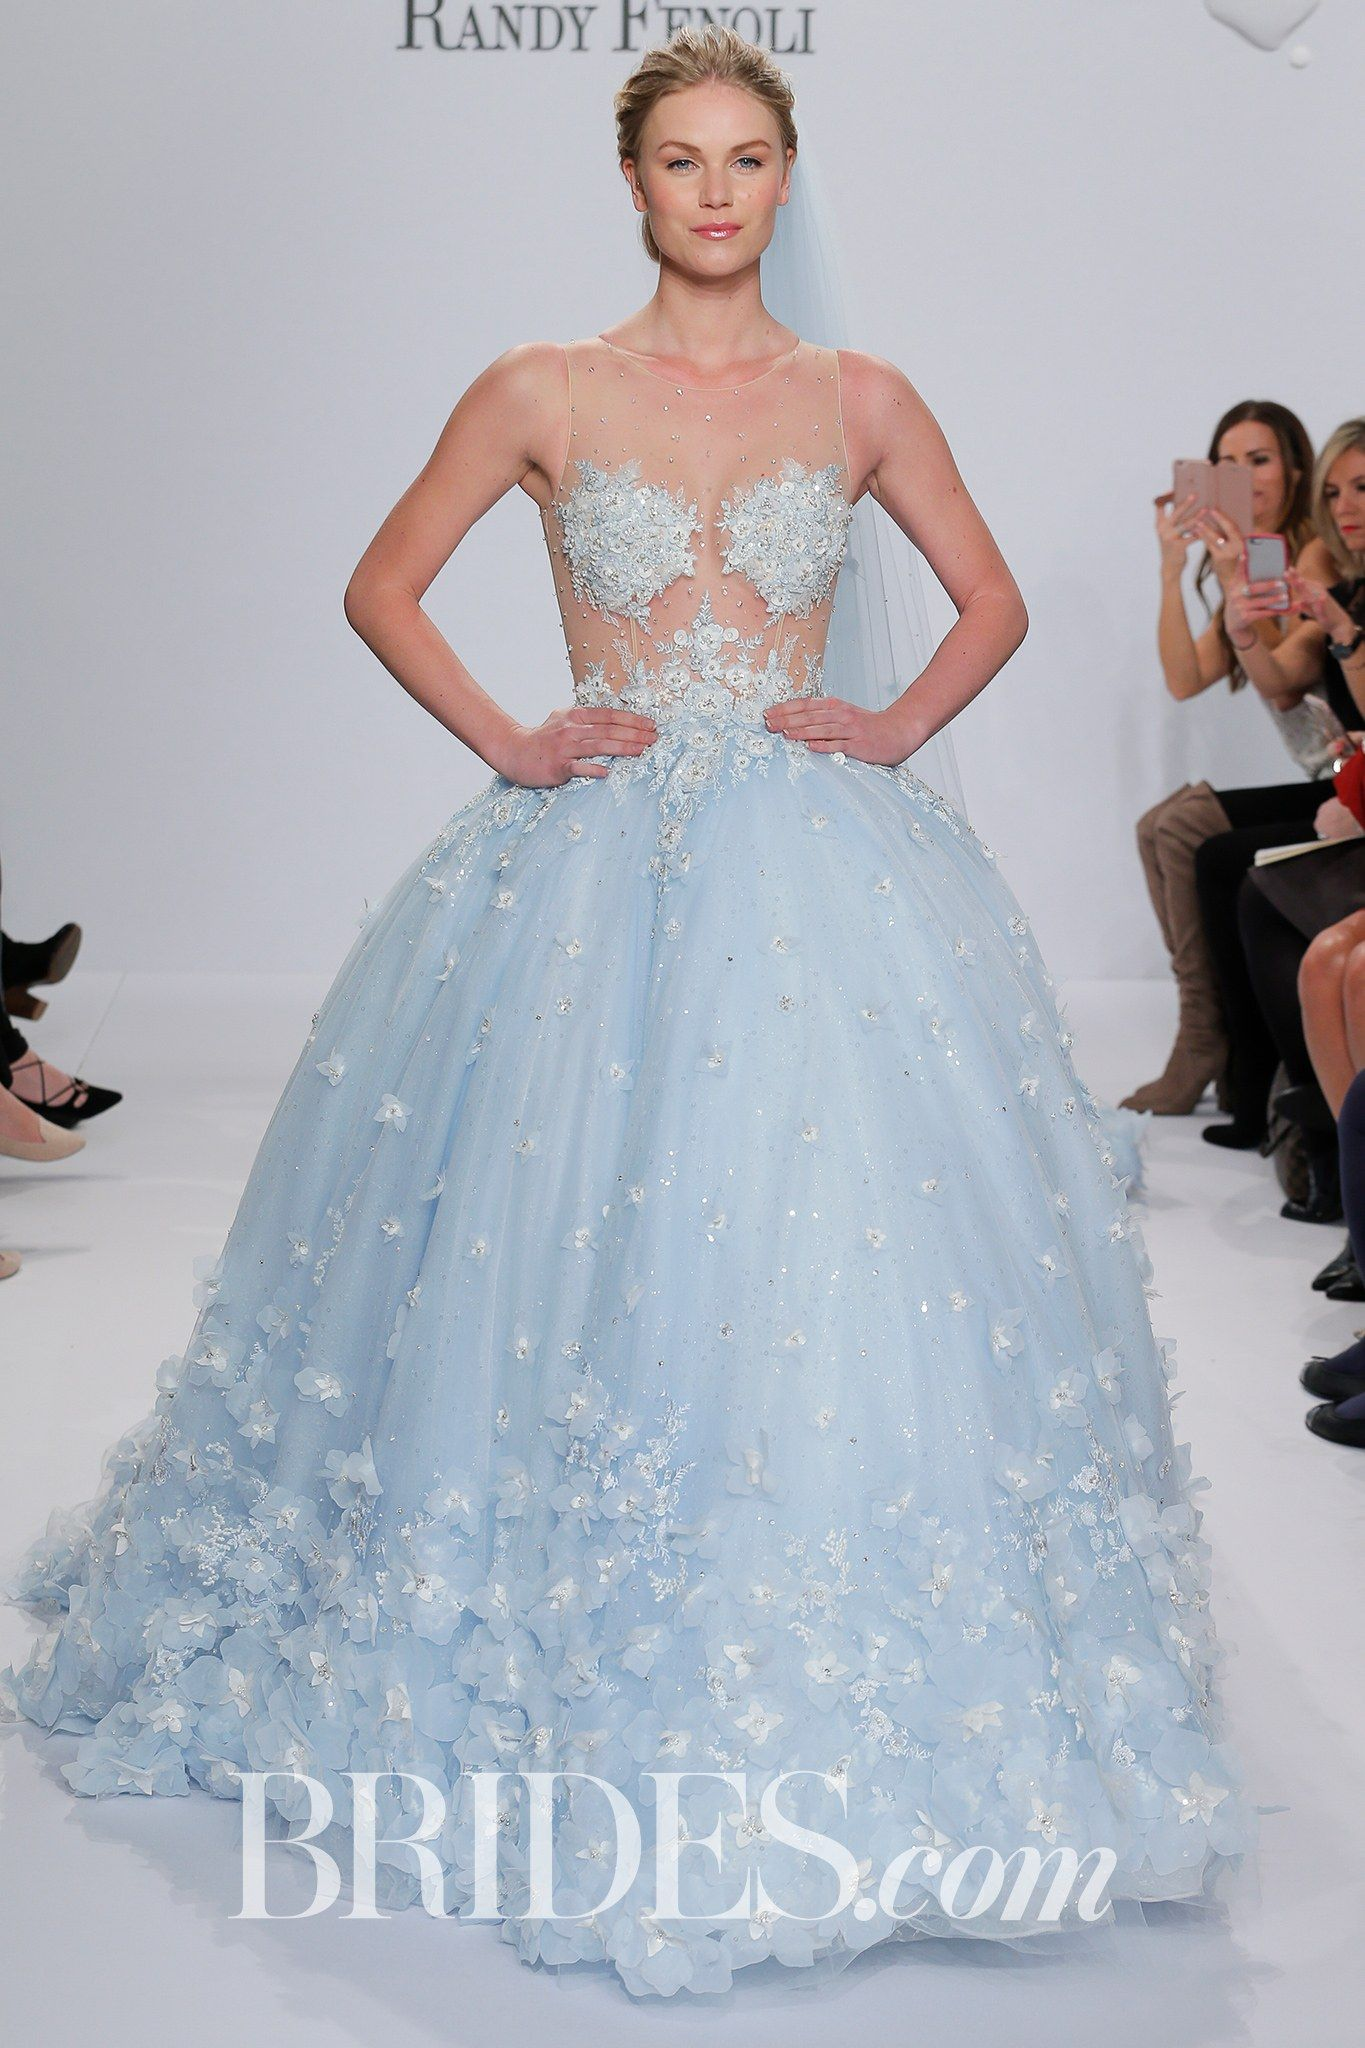 New Randy Fenoli for Kleinfeld Bridal u Wedding Dress Collection Spring Brides Brandi pastel